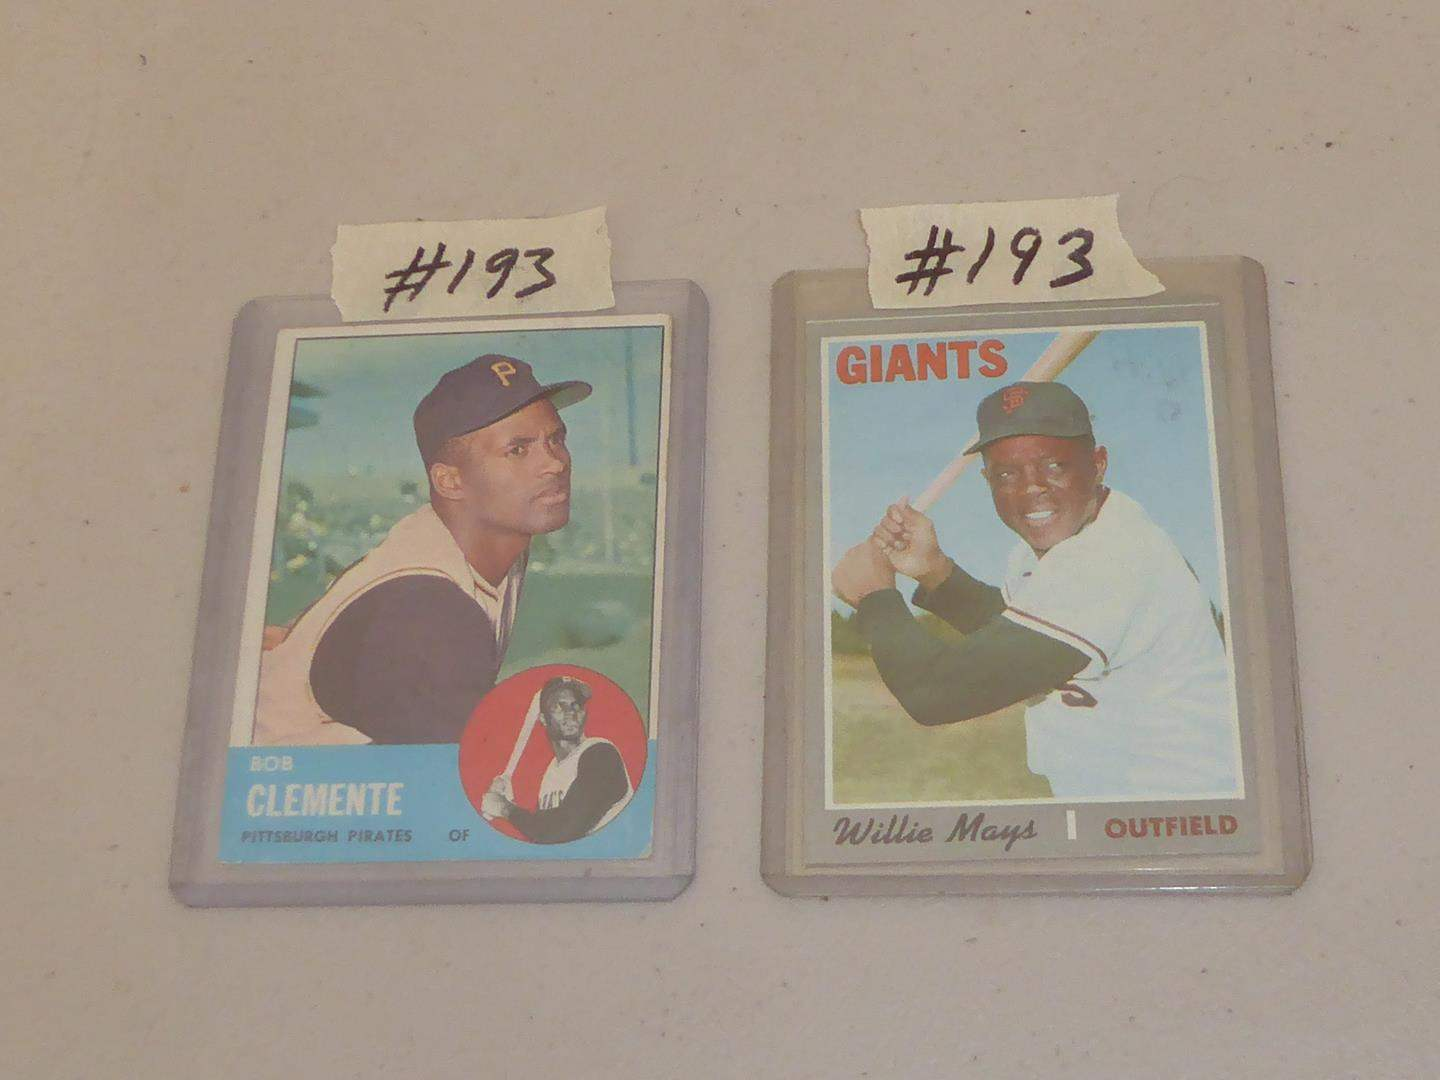 Lot # 193 - Two Topps Baseball Cards Bob Clemente & Willie Mays (main image)